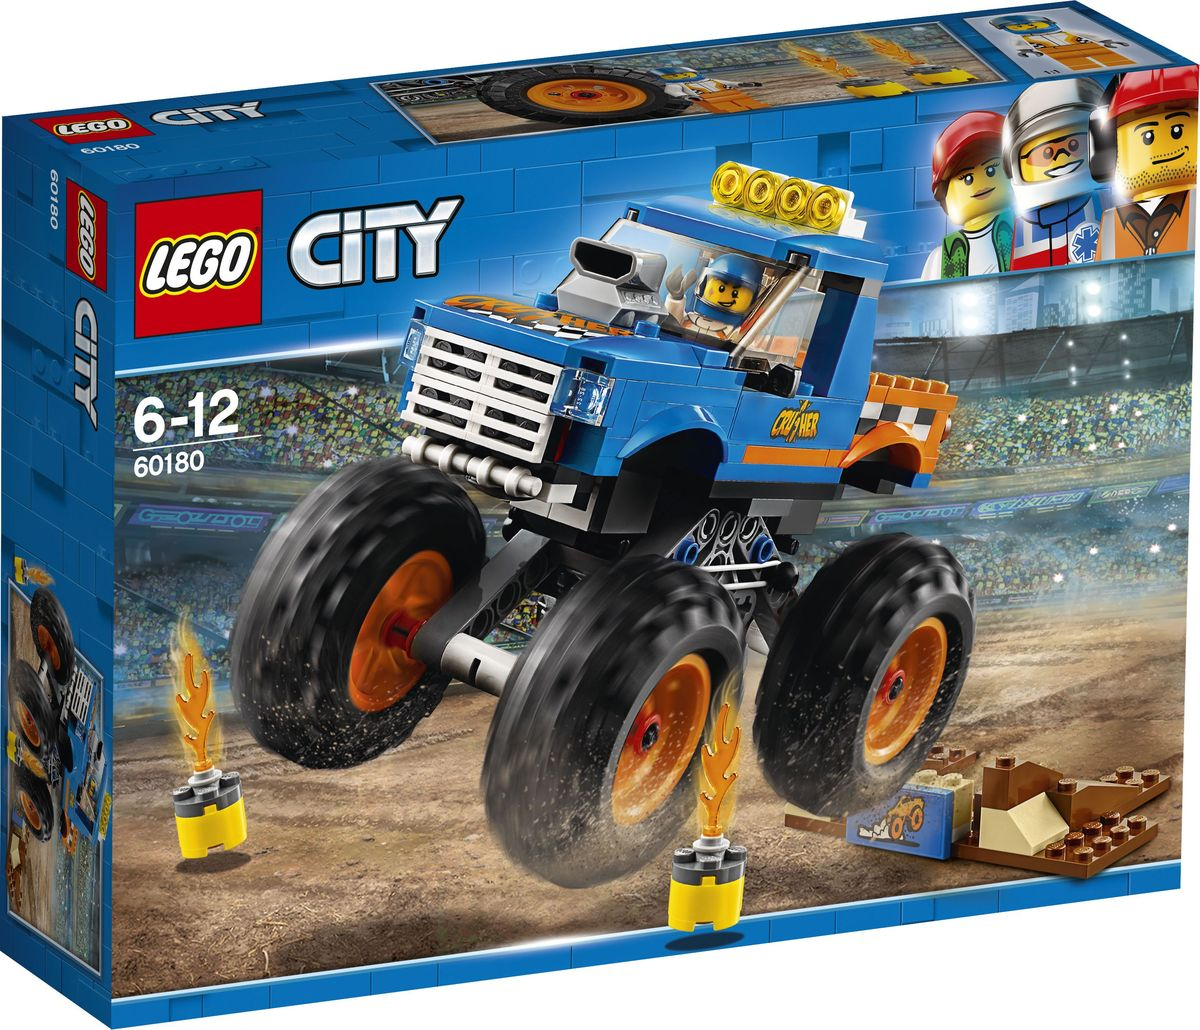 LEGO City Great Vehicles 60180 Монстр-трак Конструктор